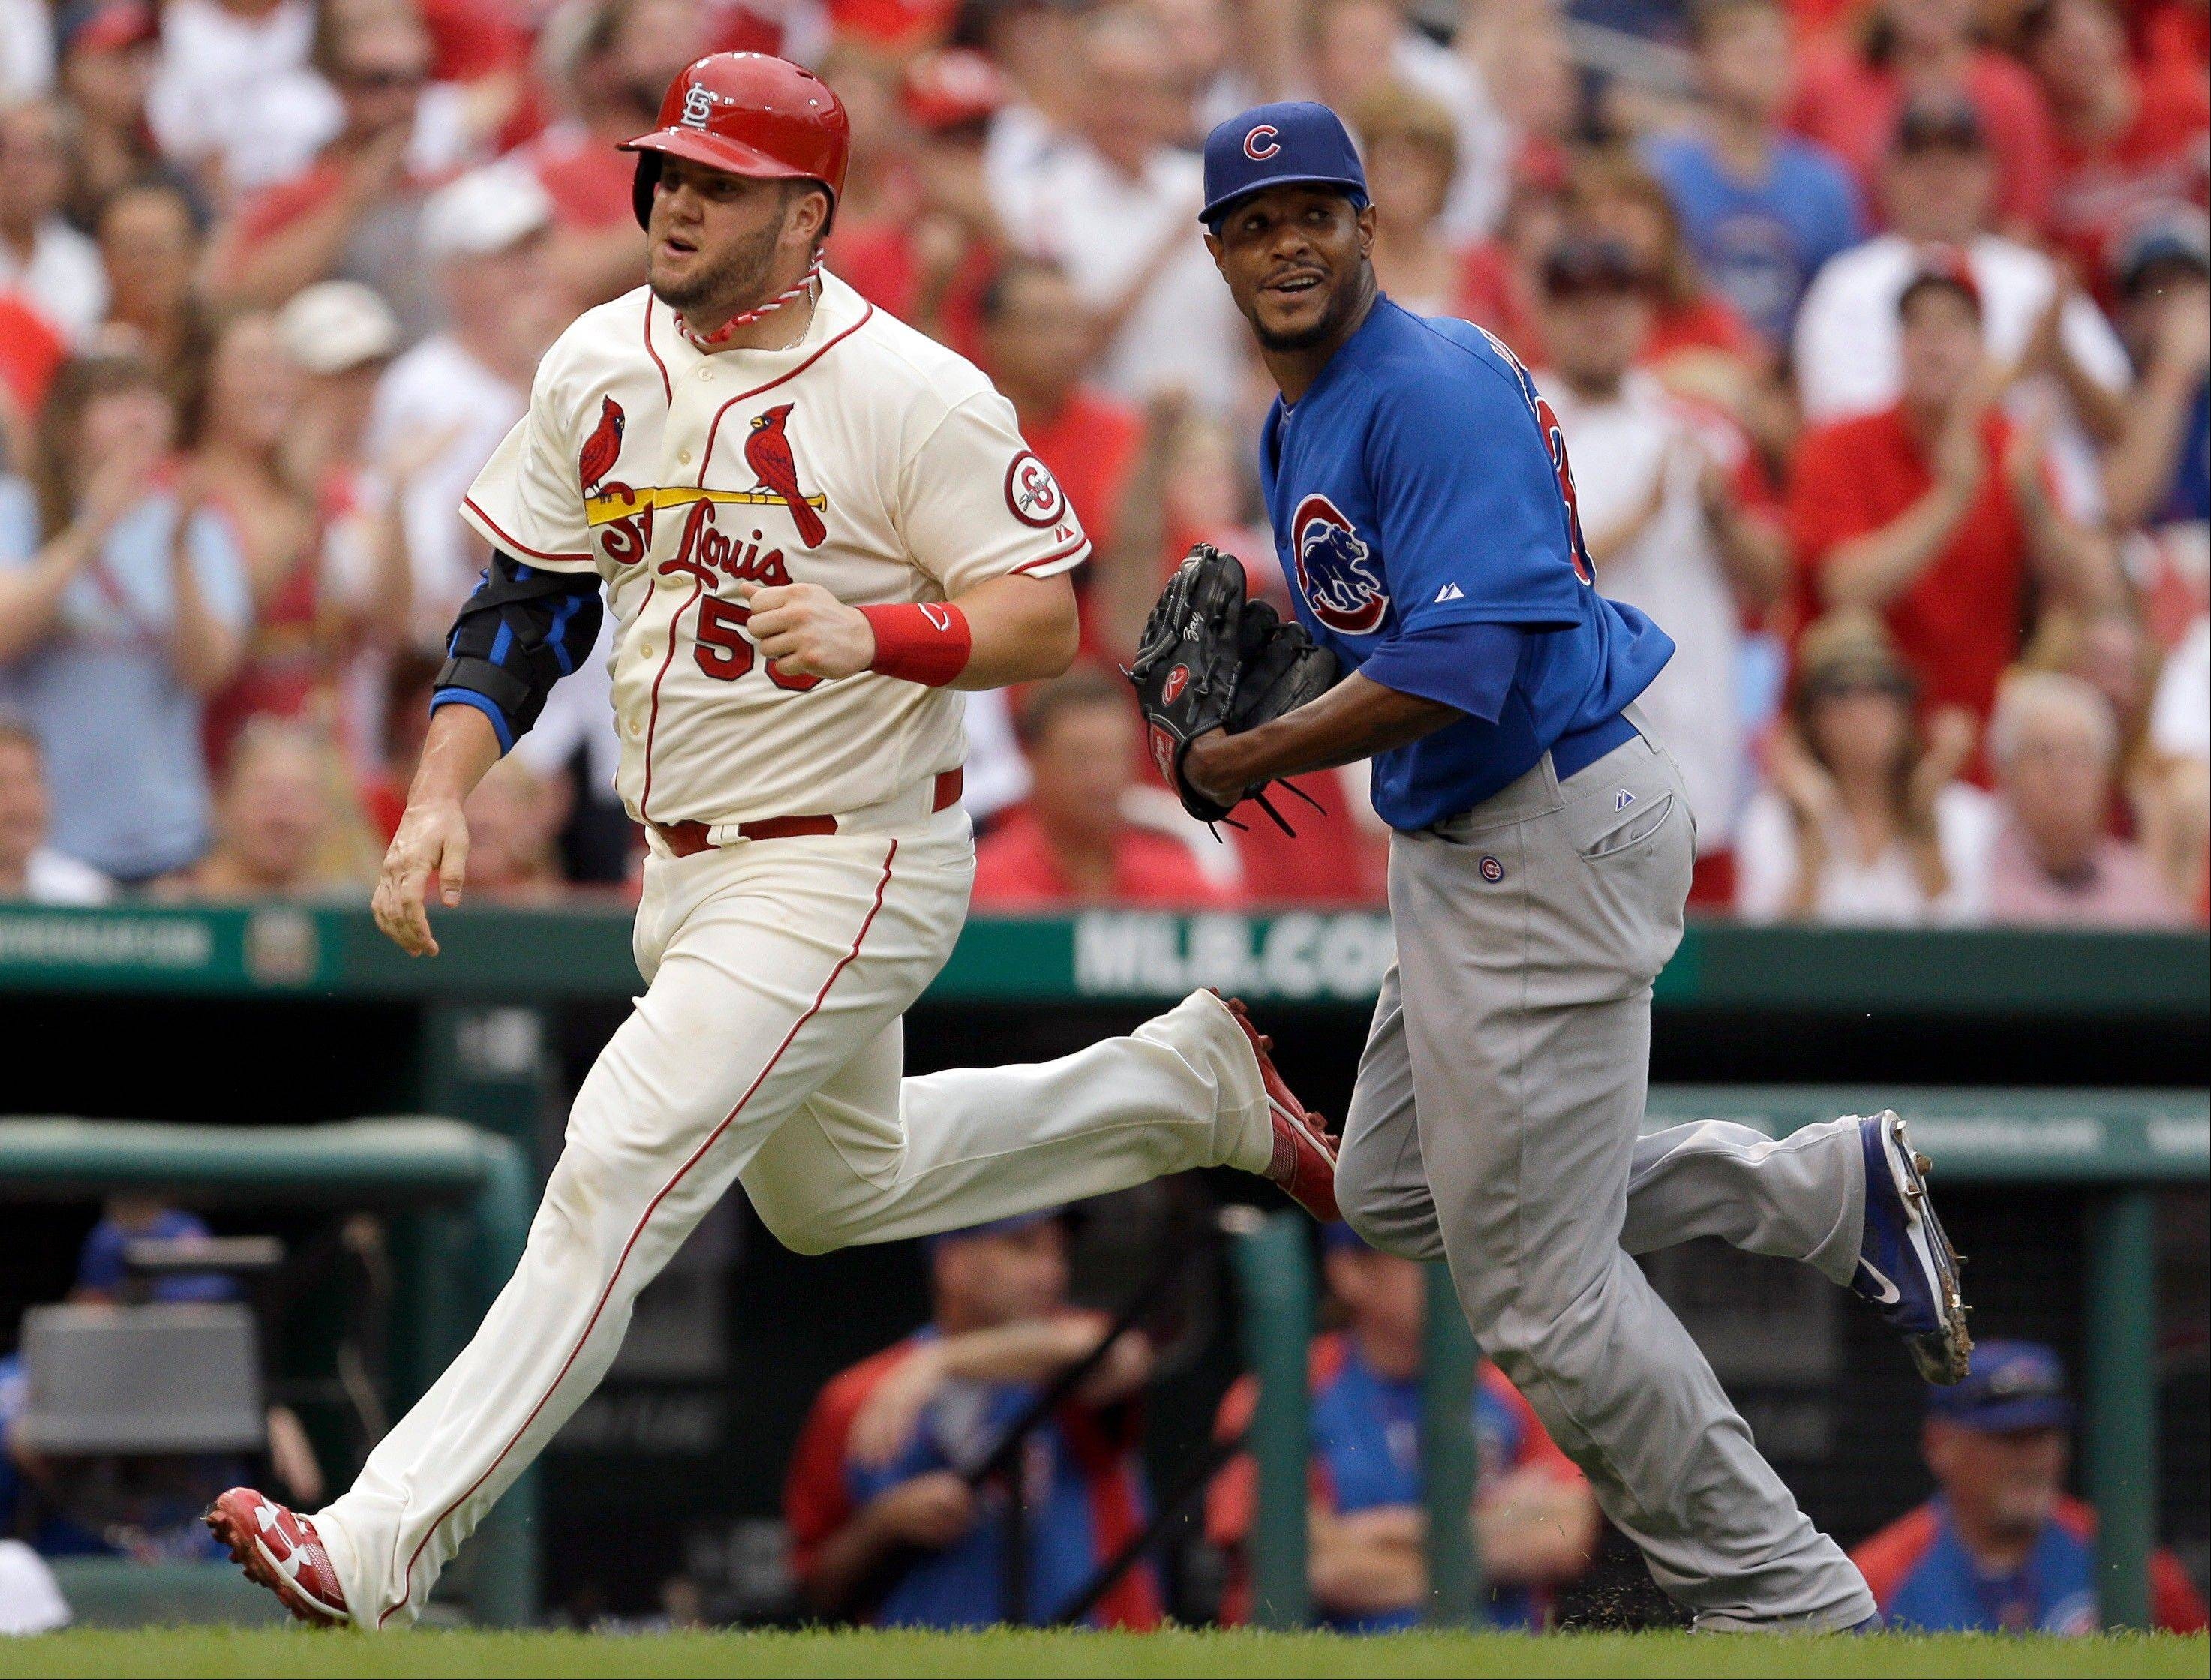 St. Louis Cardinals� Matt Adams, left, heads in to score on a two-run double by Yadier Molina as Chicago Cubs starting pitcher Edwin Jackson, right, runs to back up the throw during the third inning of a baseball game Saturday in St. Louis.